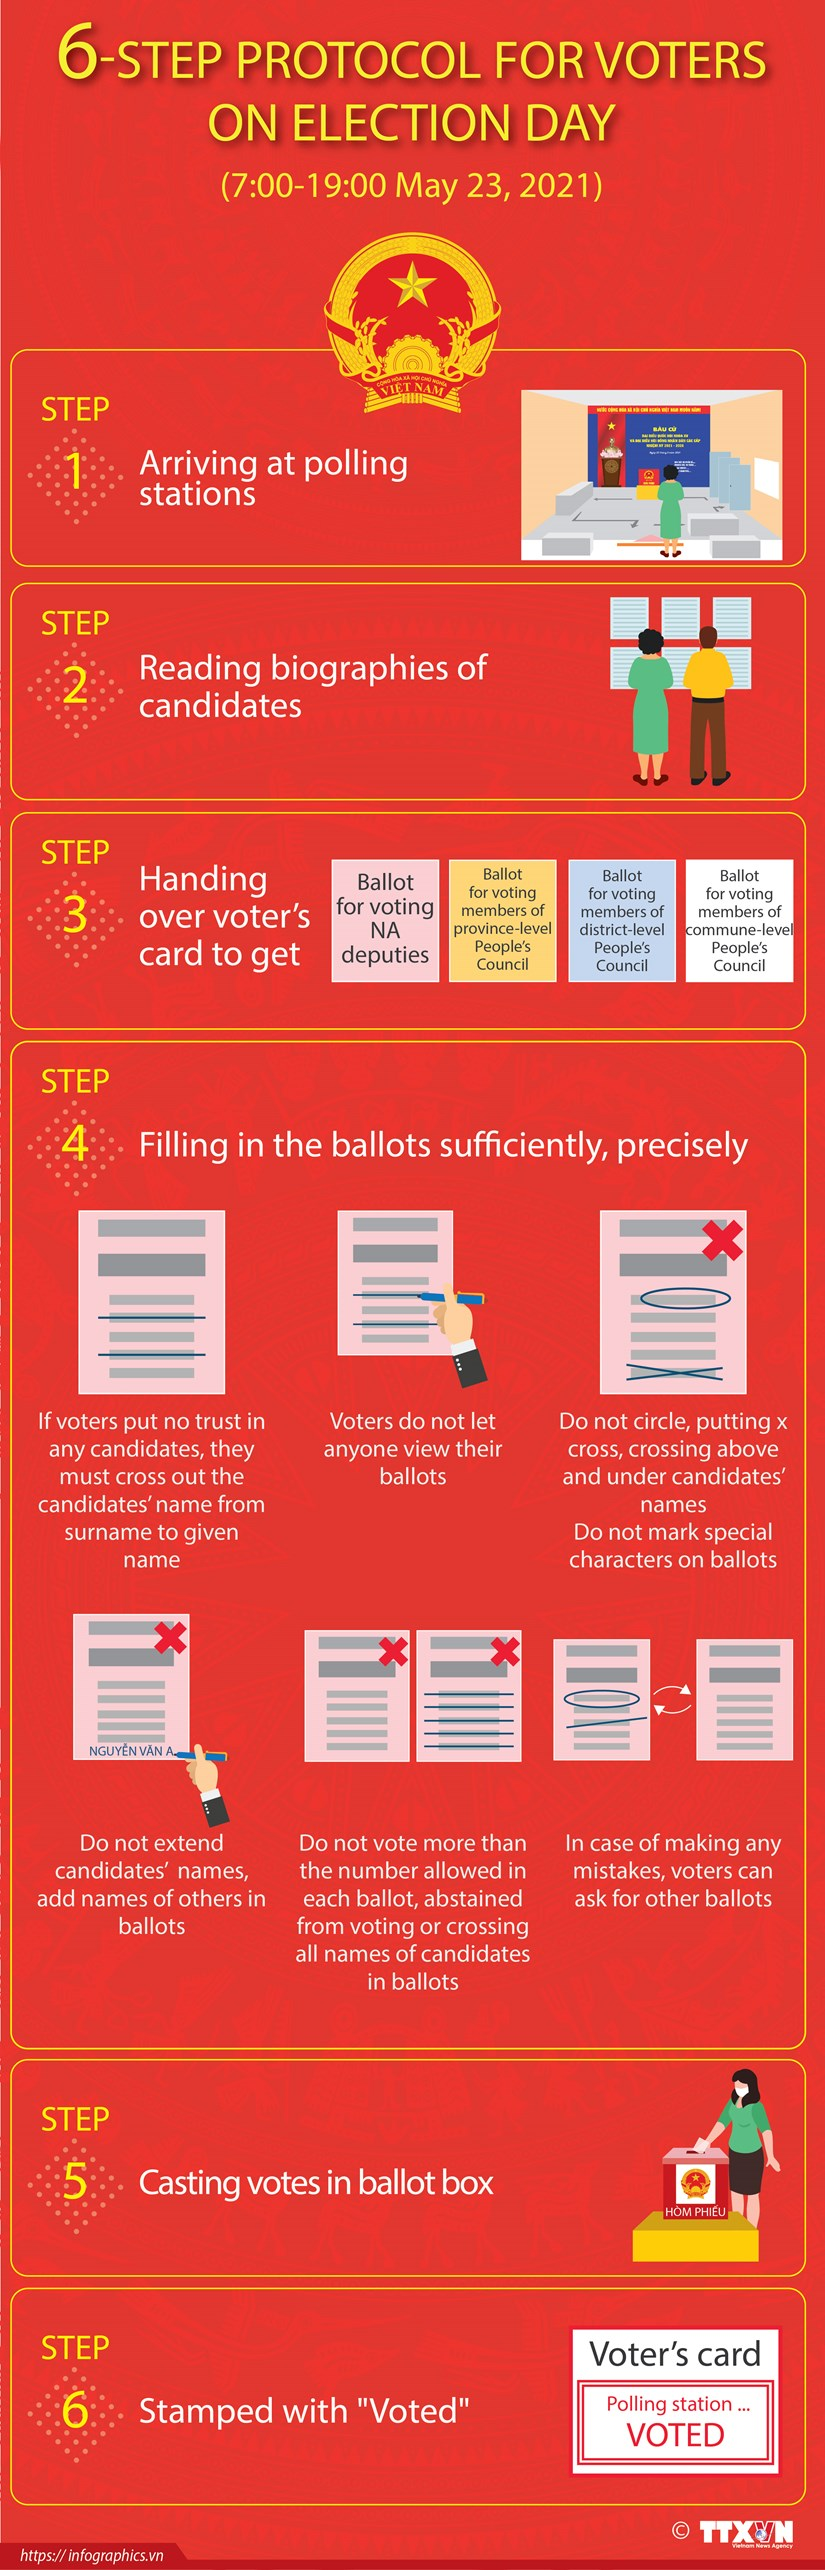 6-step protocol for voters on election day hinh anh 1